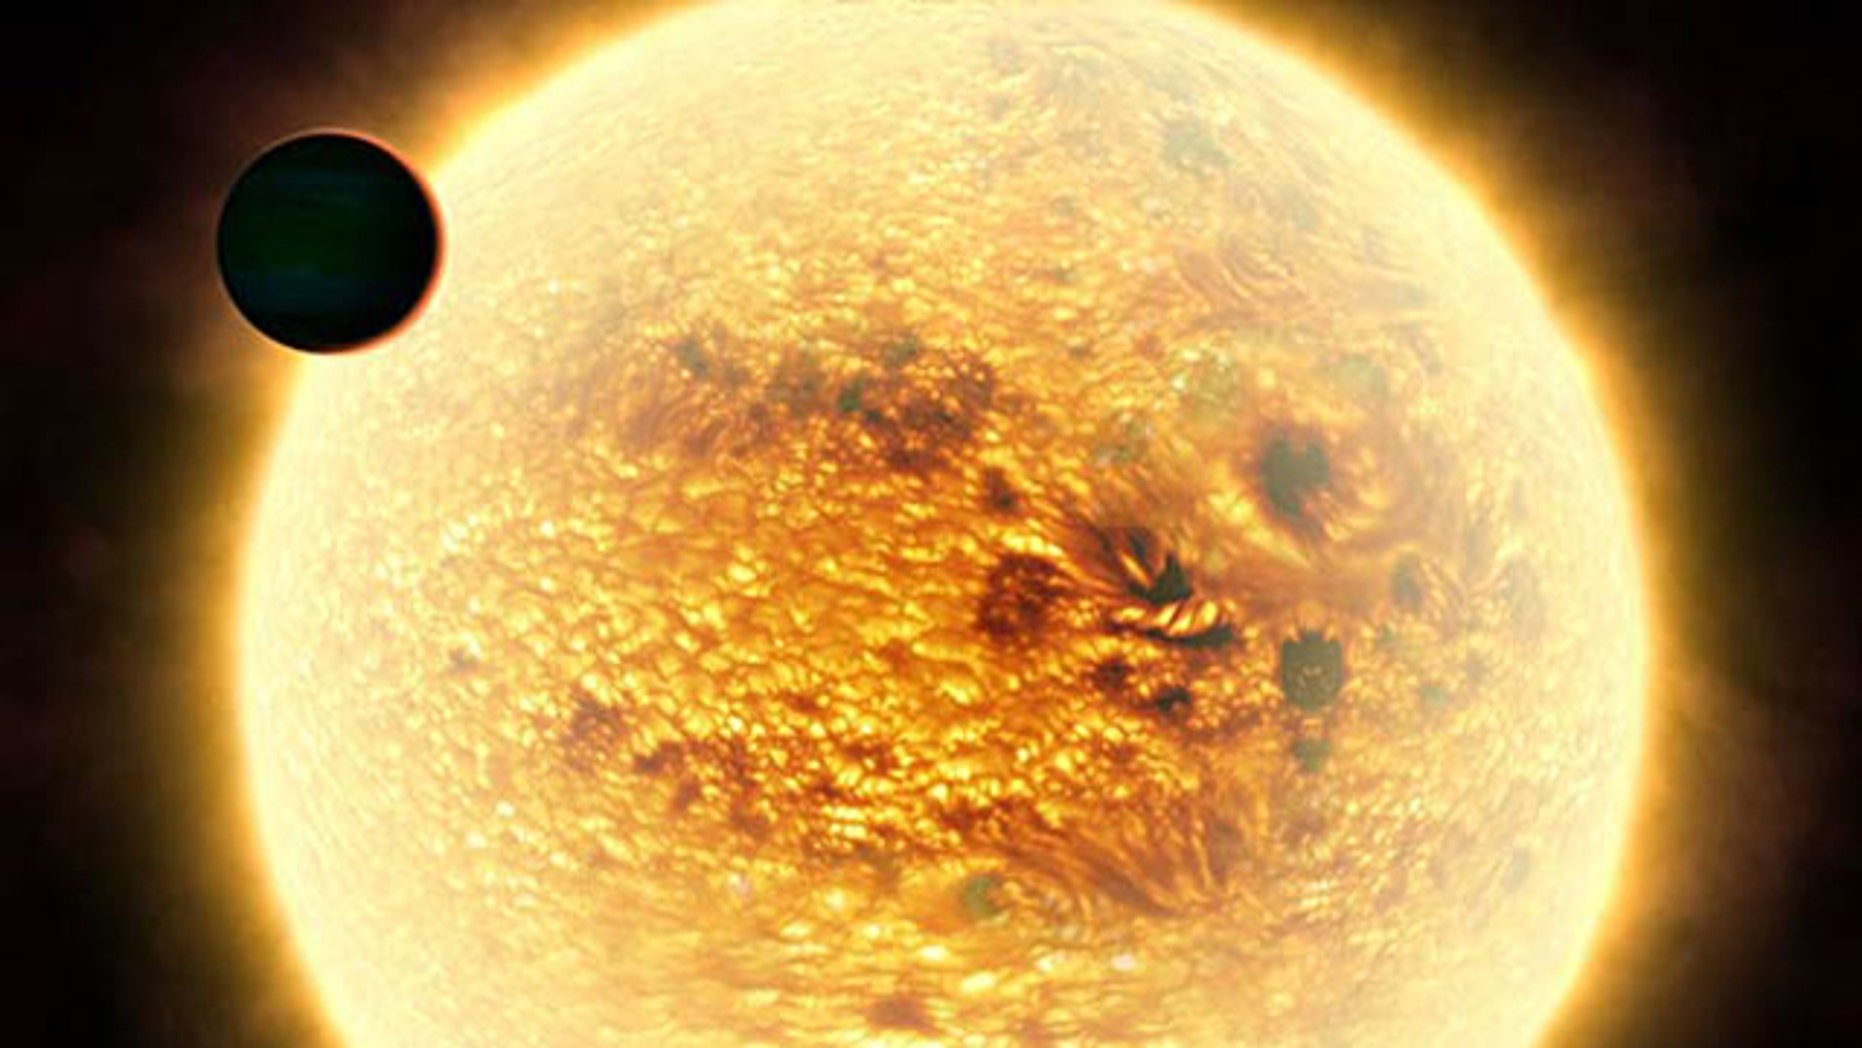 An artist's impression of the scorching extrasolar planet WASP-12b looming close to its parent star in the background. Credit: